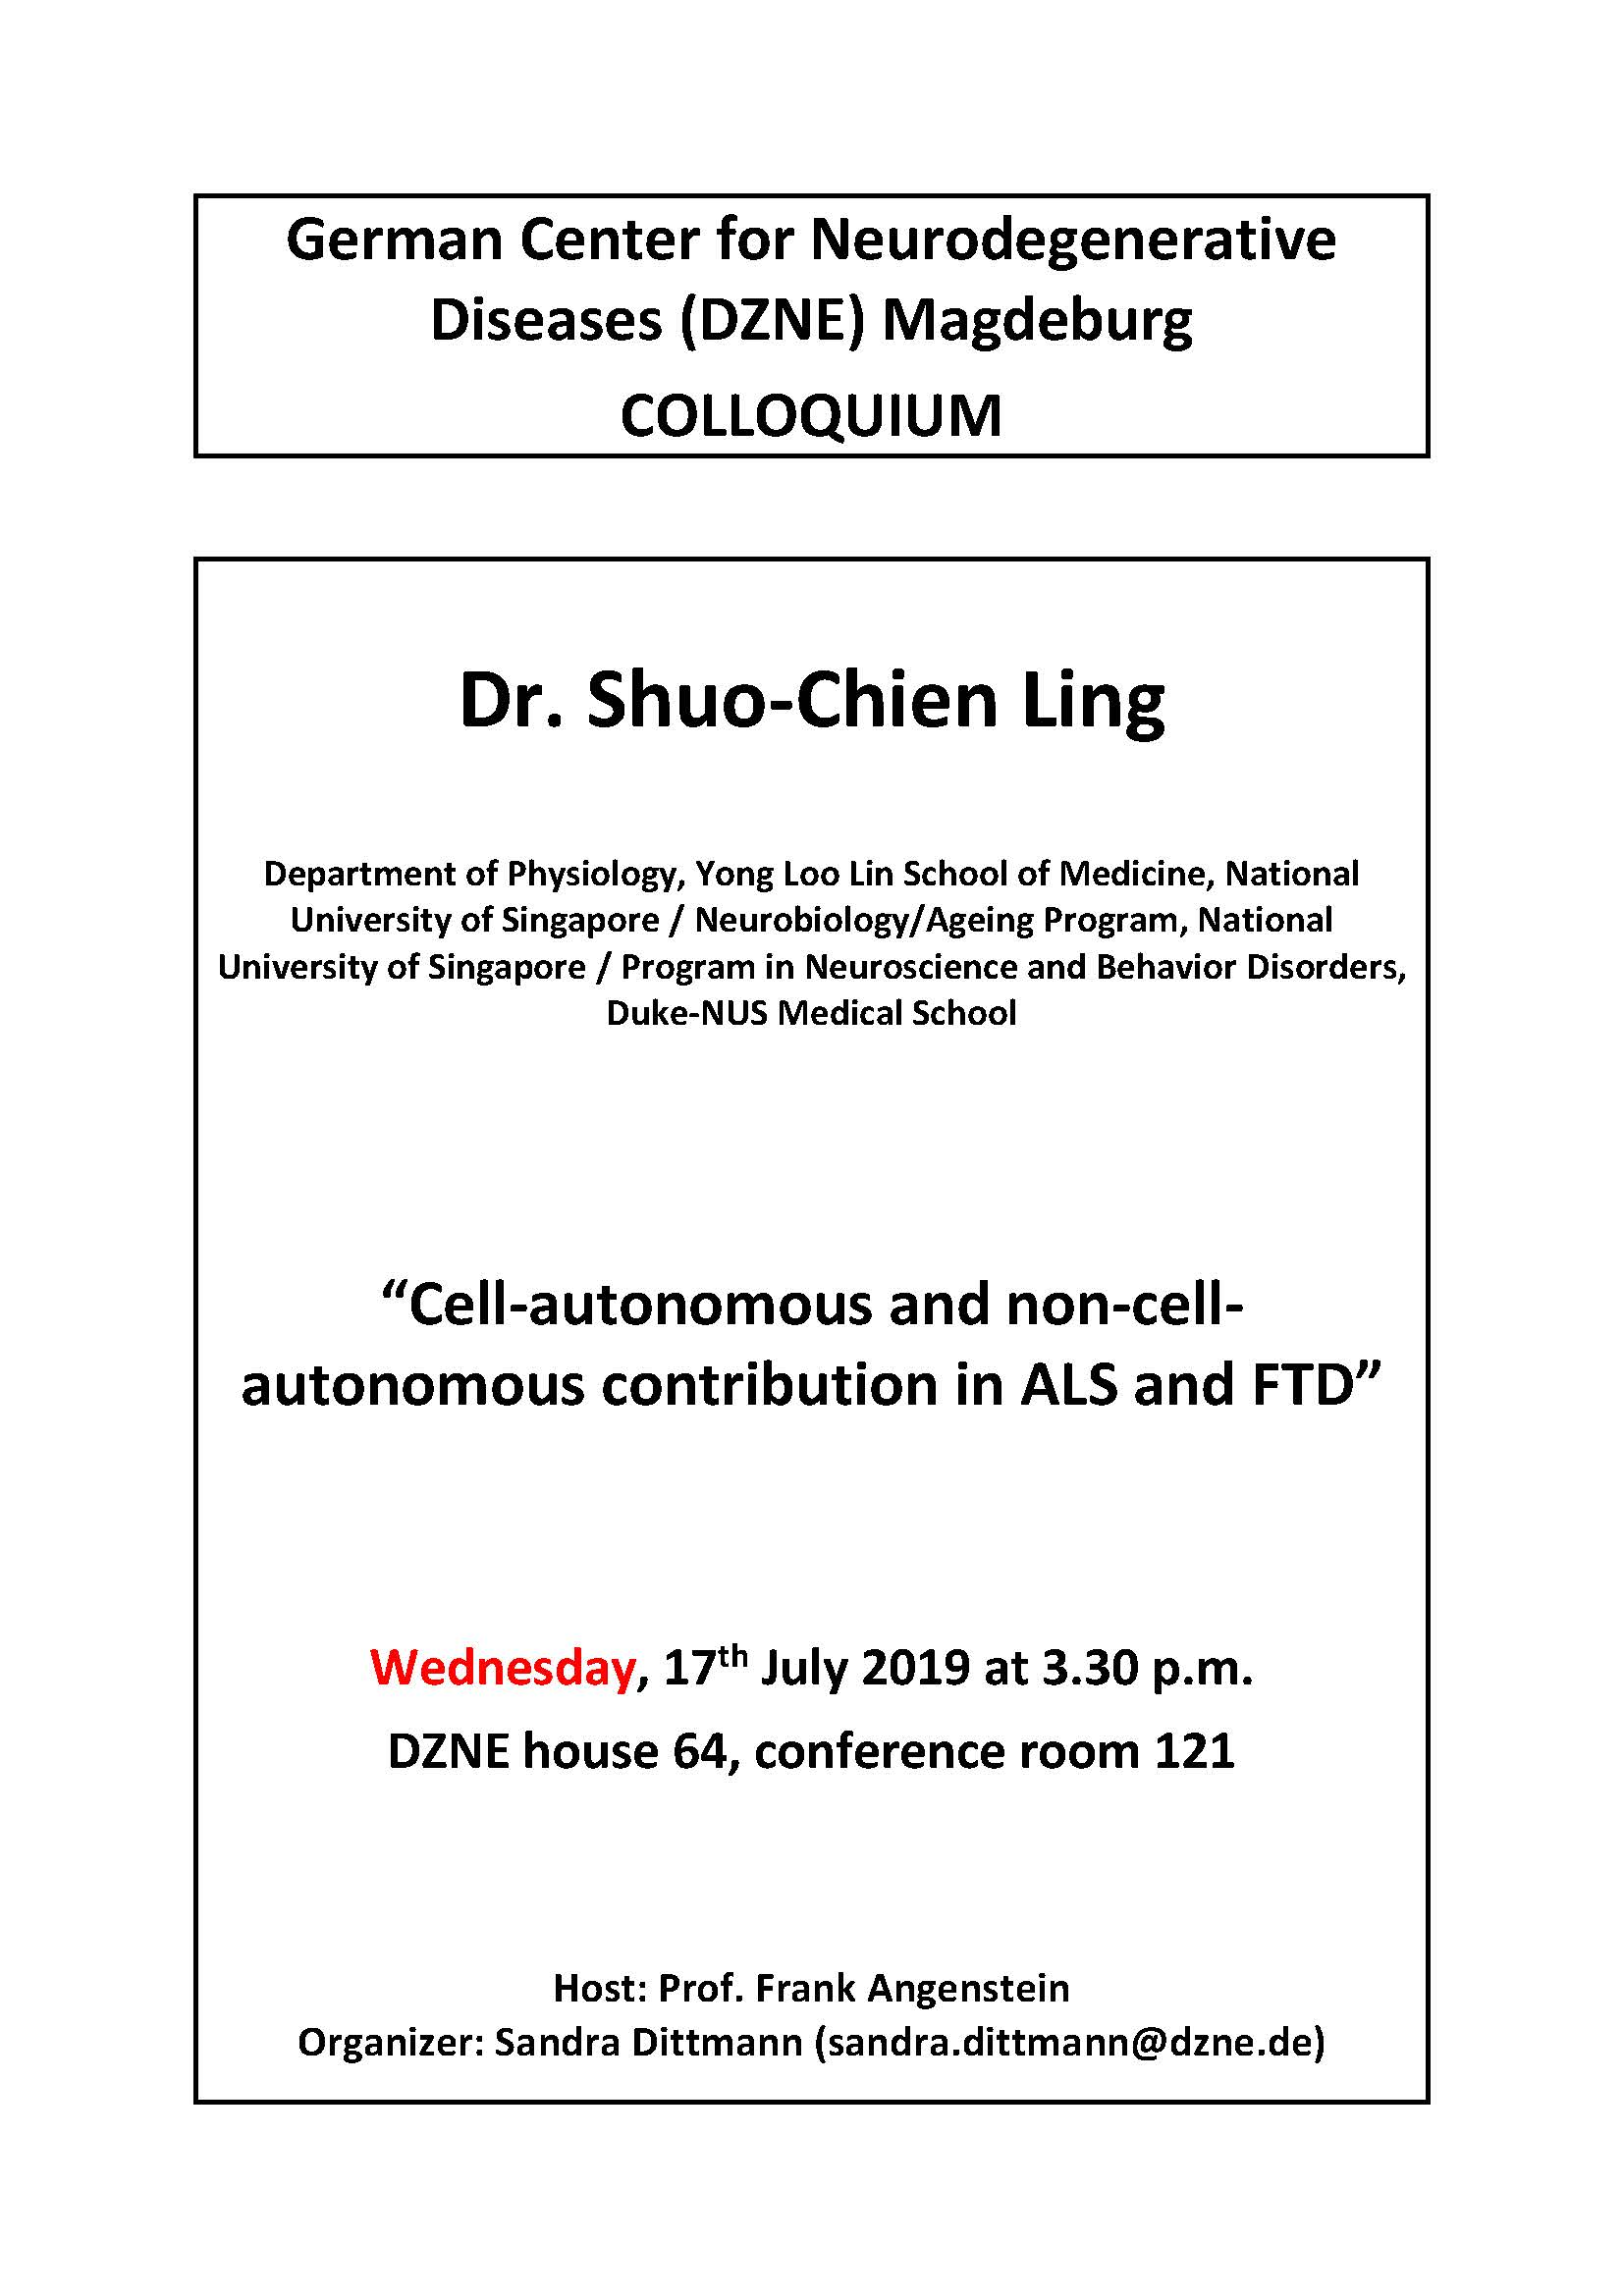 20190717 Dr. Shuo Chien Ling DZNE Colloquium